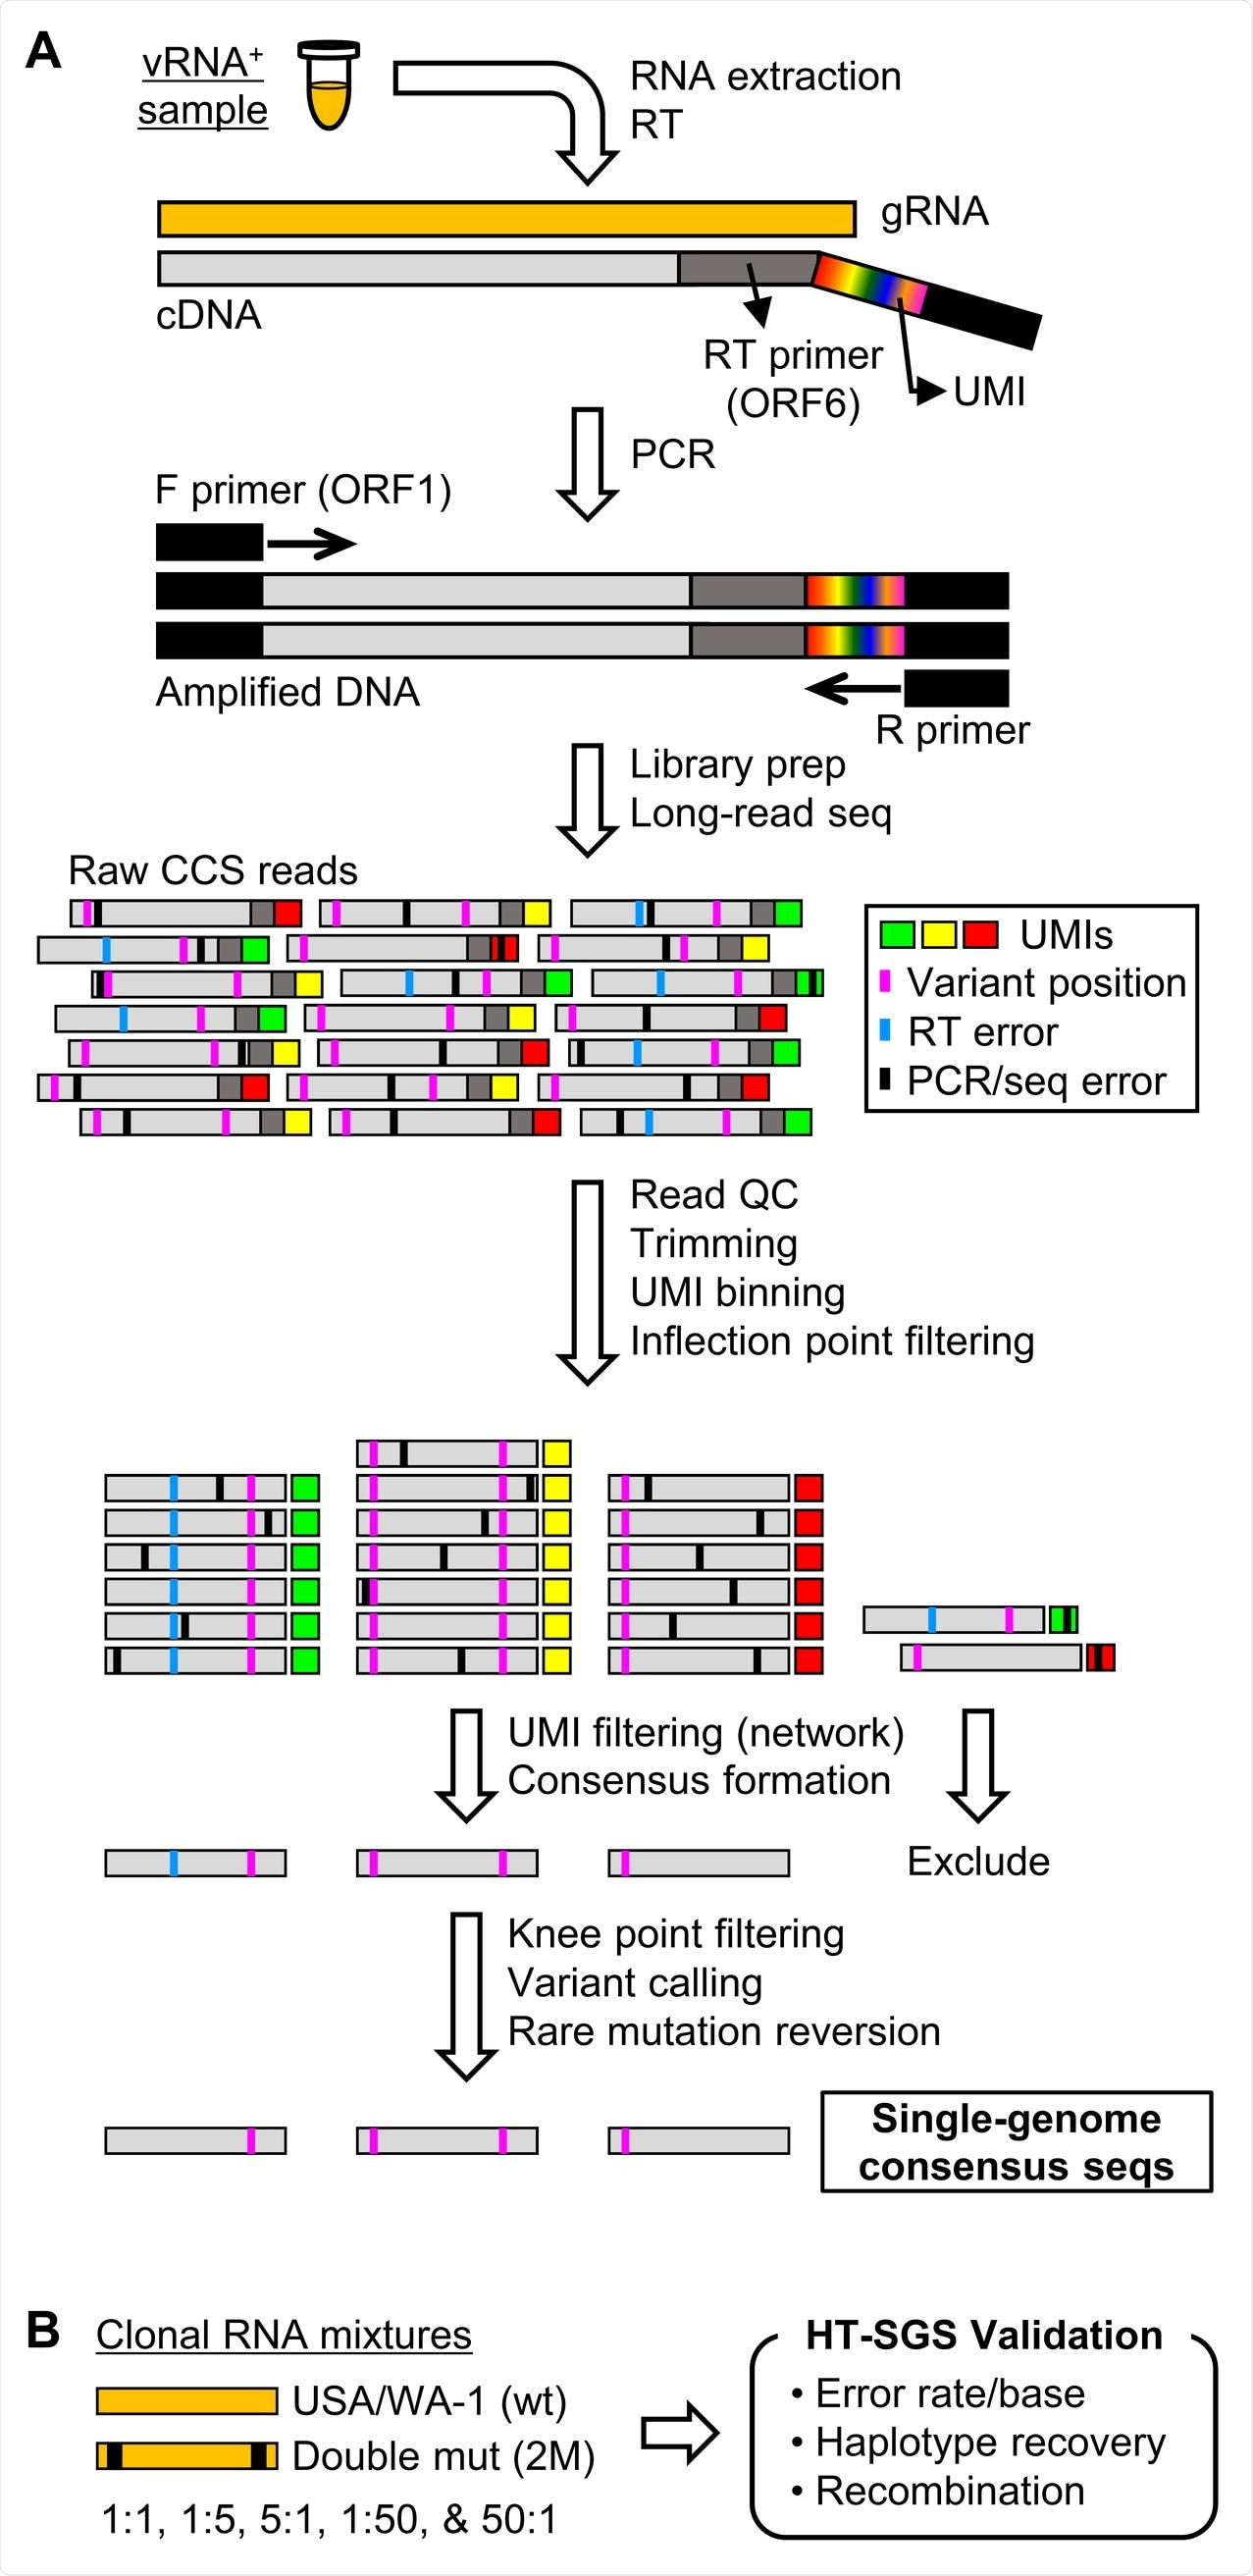 Overview of HT-SGS data generation and analysis. (A) SARS-CoV-2 genomic RNA (gRNA) is reverse-transcribed to include an 8-nucleotide unique molecular identifier (UMI; multicolored bar), followed by PCR amplification and Pacific Biosciences single-molecule, real-time (SMRT) sequencing of the 6.1-kilobase region encompassing spike (S), ORF3, envelope (E), and membrane (M) protein genes. After quality control and trimming, sequence reads are compiled into bins that share a UMI sequence, and bins with low read counts are removed according to the inflection point of the read count distribution. Presumptive false bins arising from errors in the UMI are then identified and removed by the network adjacency method, followed by further removal of bins with the lowest read counts using a more conservative knee point cutoff. Variant calling is then used to identify presumptive erroneous mutations based on rarity and pattern (ex., single-base insertions adjacent to homopolymers), and these are reverted to the sample consensus. Finally, SGS that correspond to haplotypes occurring only once in each sample are excluded (not pictured). (B) To validate data generation and analysis procedures, clonal RNAs transcribed in vitro from USA/WA-1 and double mutant sequences were mixed at varying ratios and subjected to HT-SGS.